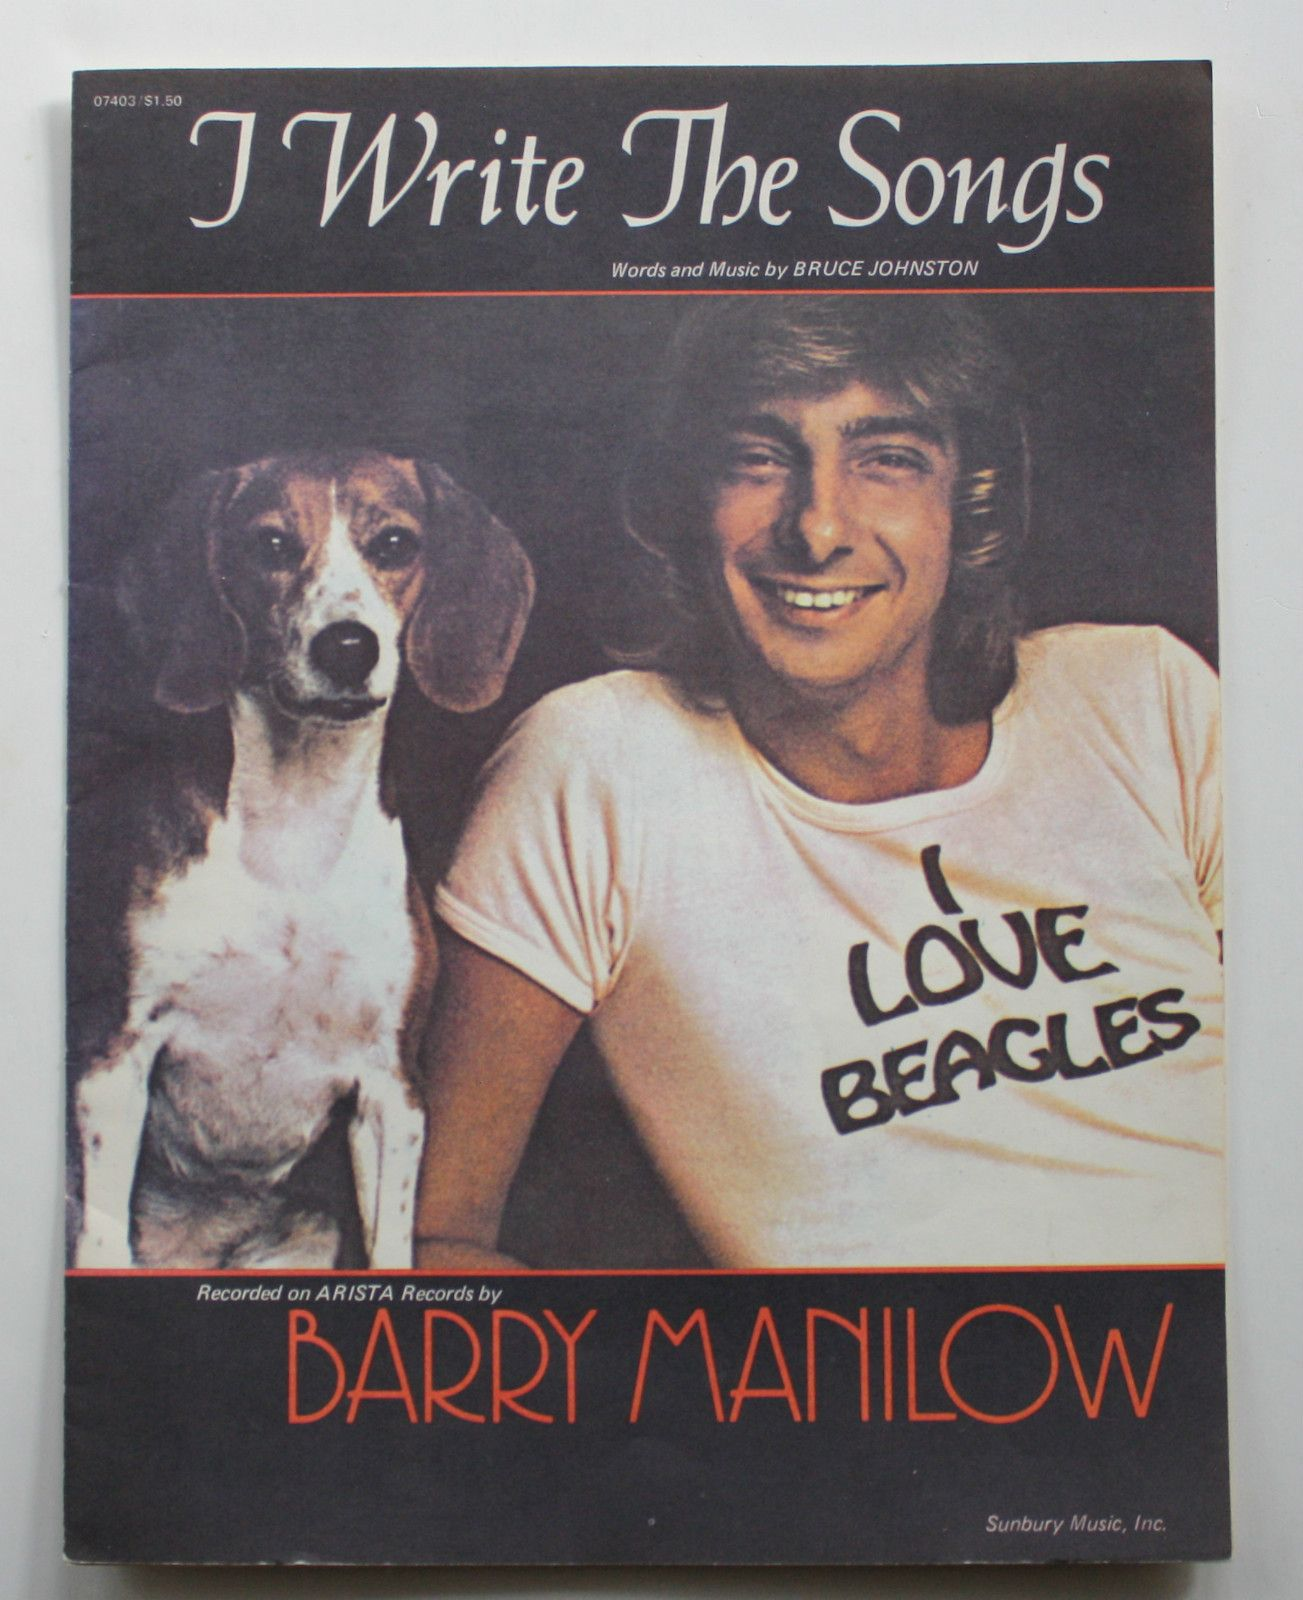 Barry Manilow Sheet Music I Write The Songs 1974 Beagle Dog Cover